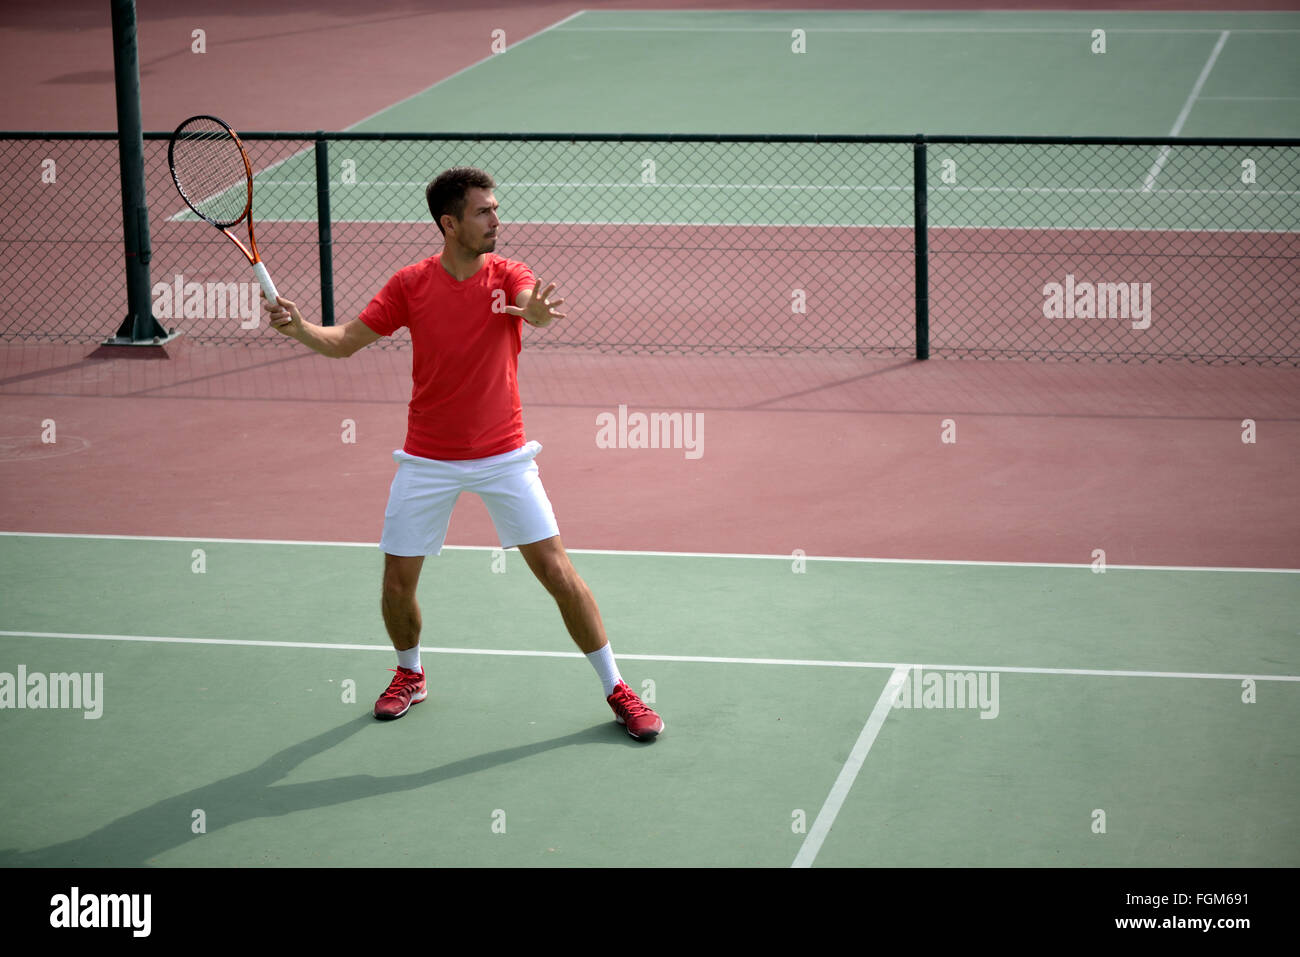 Joueur de tennis masculin en pratique de tennis de Dubaï. Photo Stock